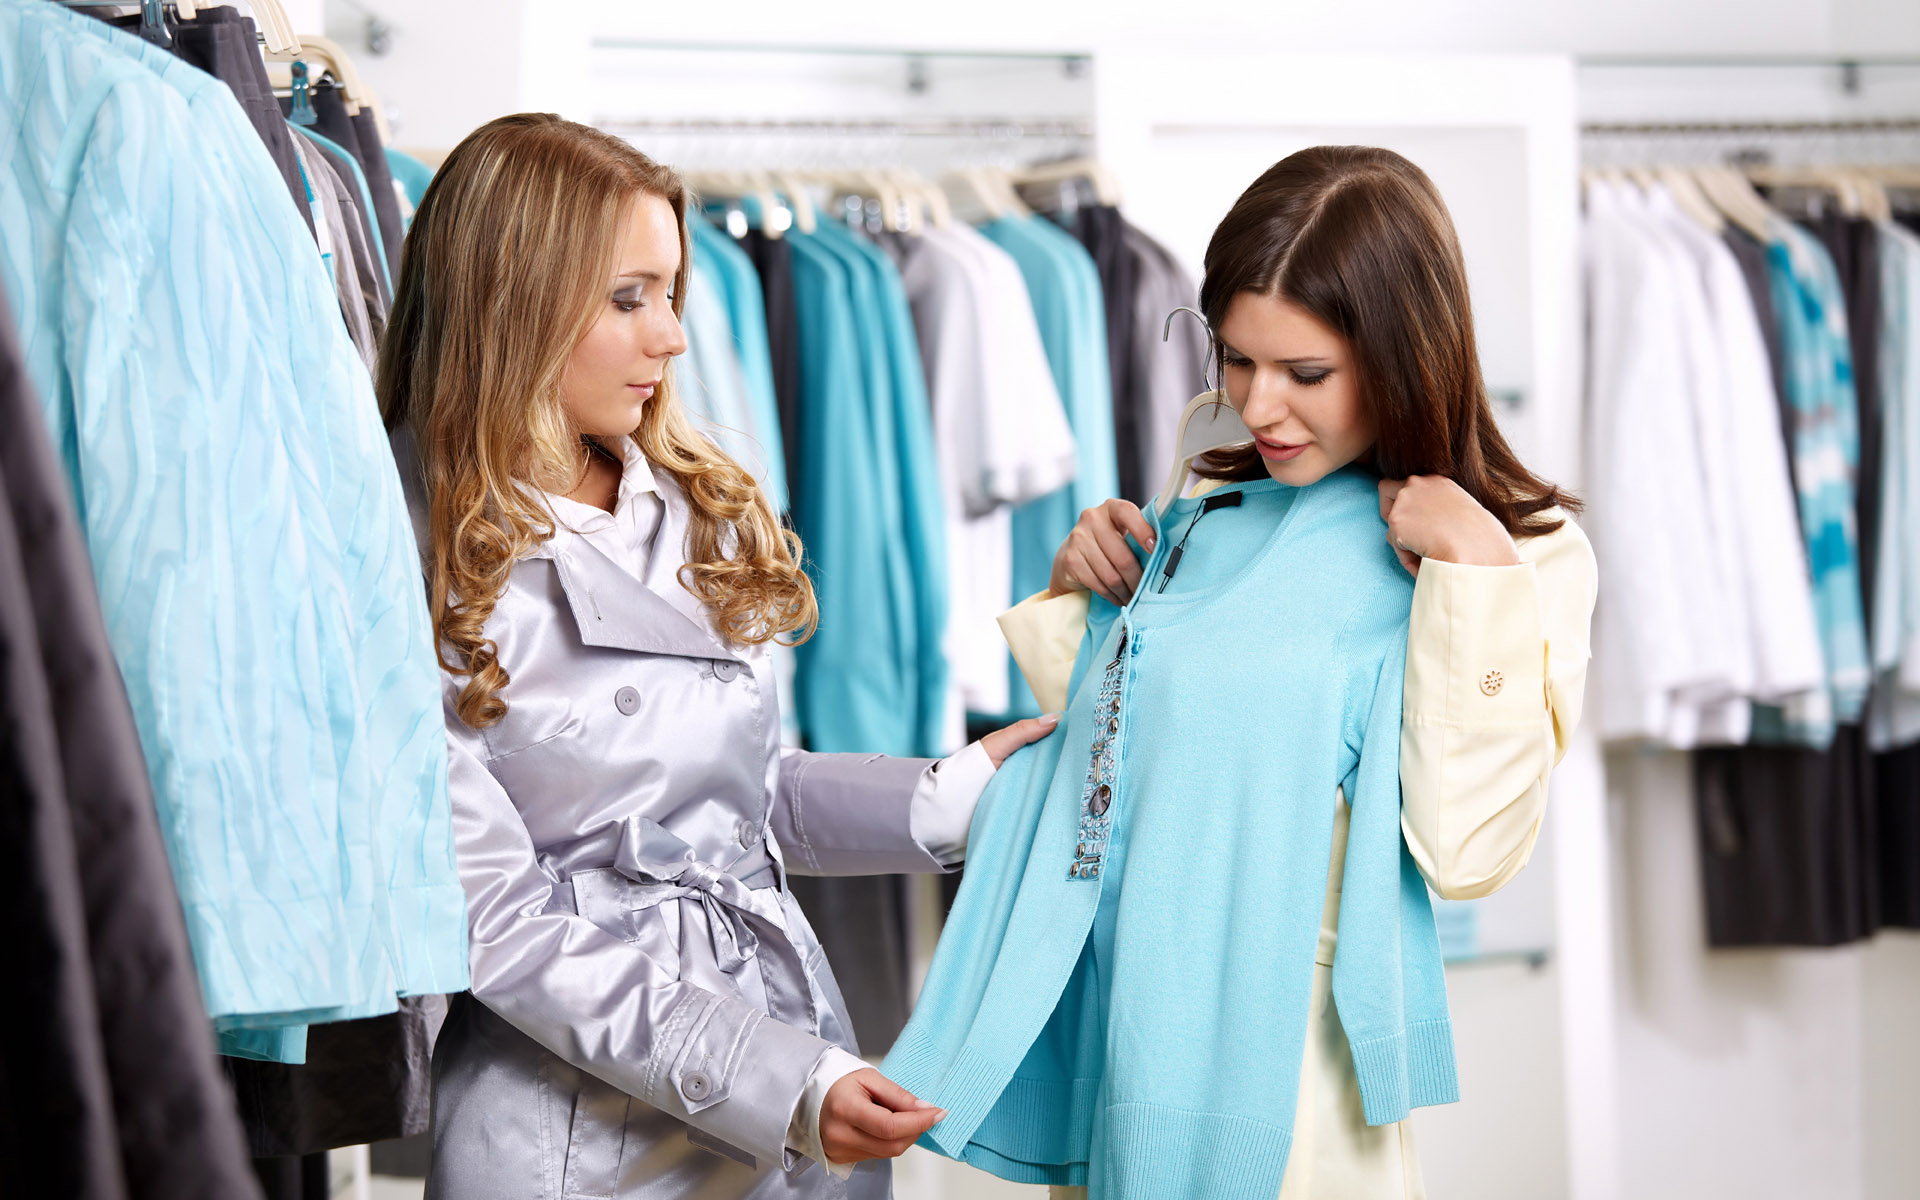 FreeGreatPicture_com-24301-hd-women-shopping